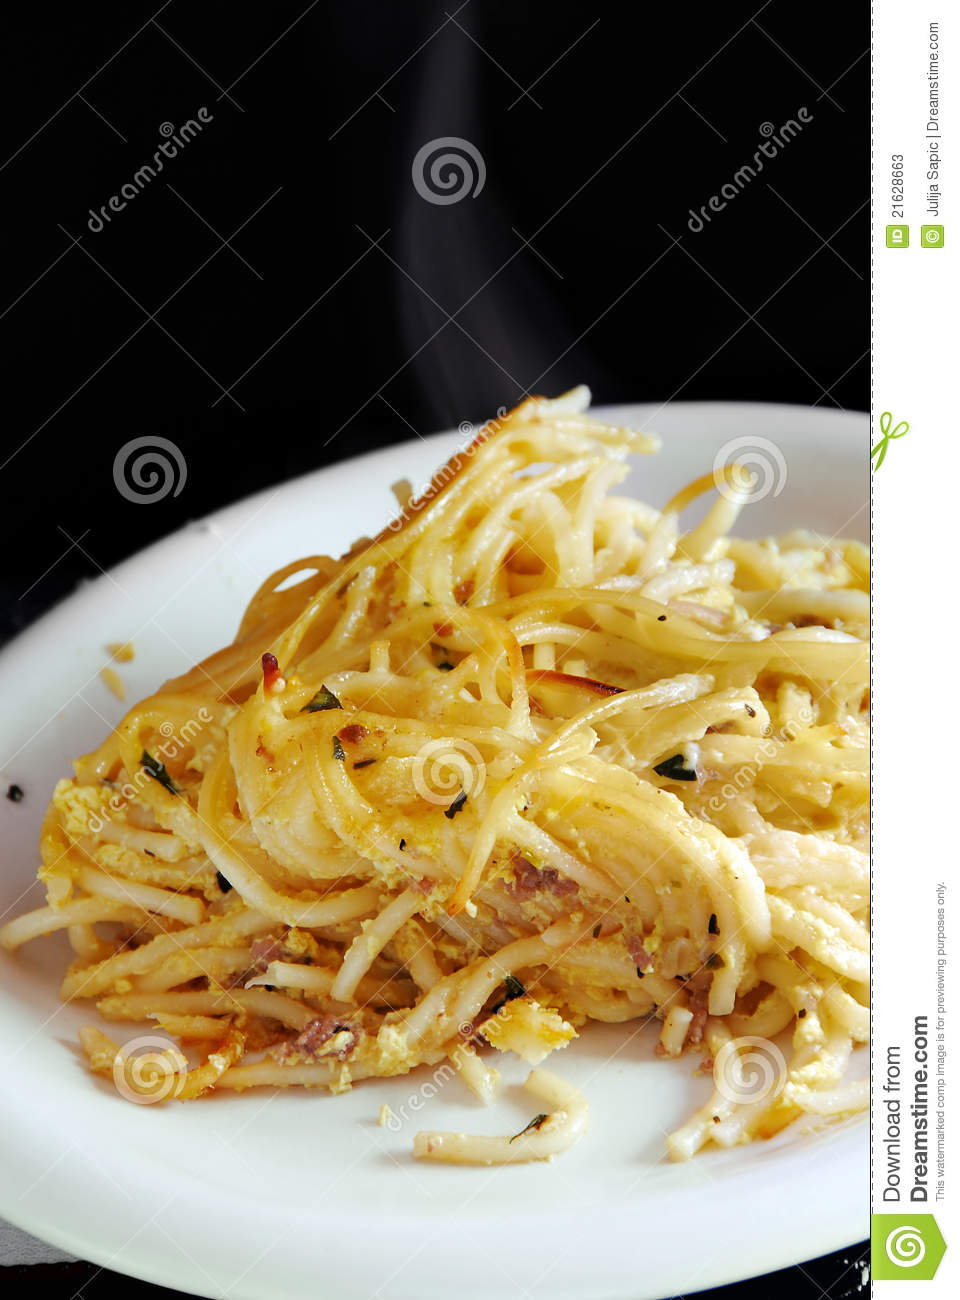 Appetizing spaghetti with chicken